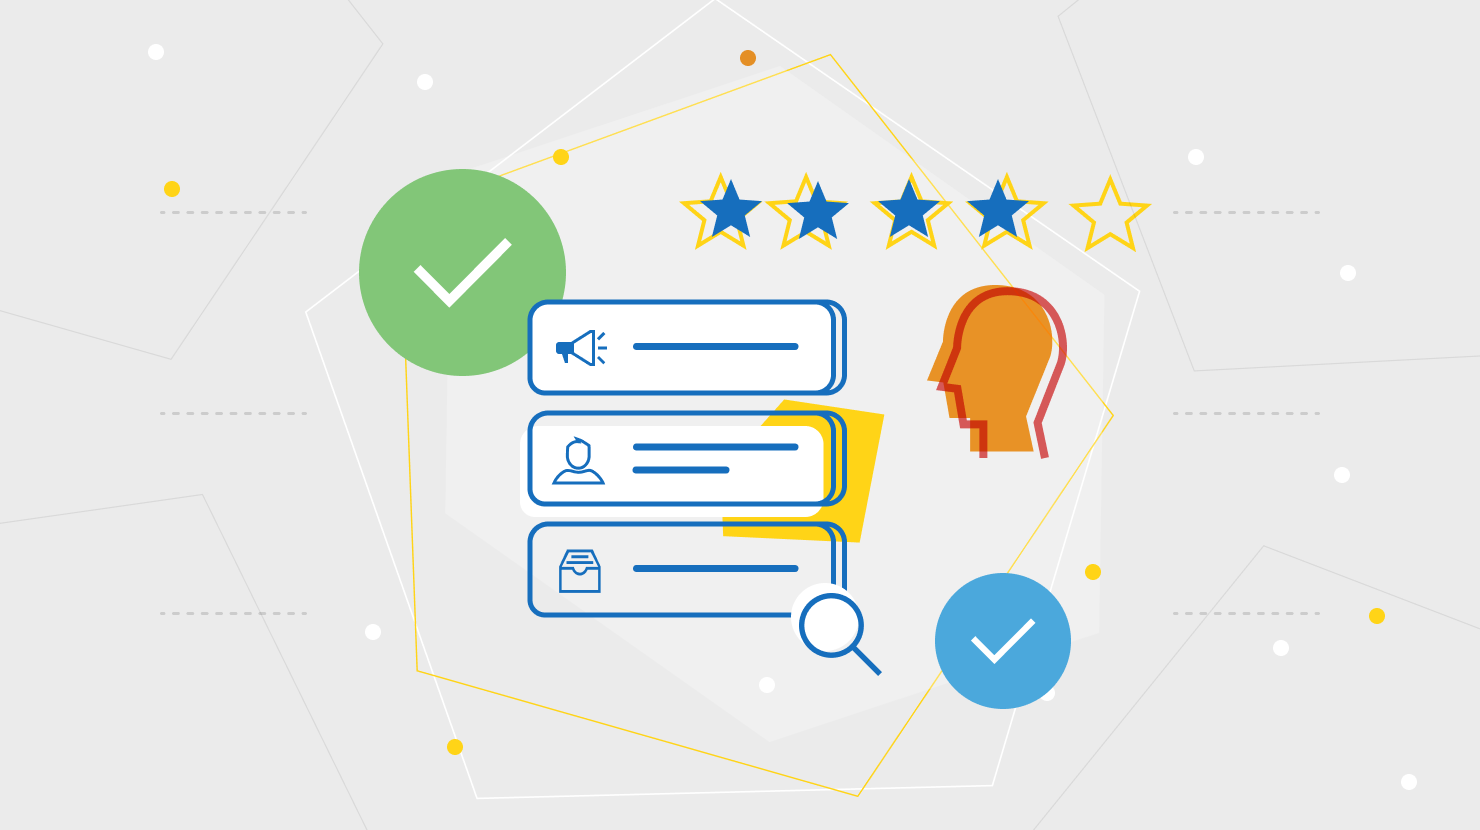 5 Steps To Finding The Right Company Intranet Portal Diagram